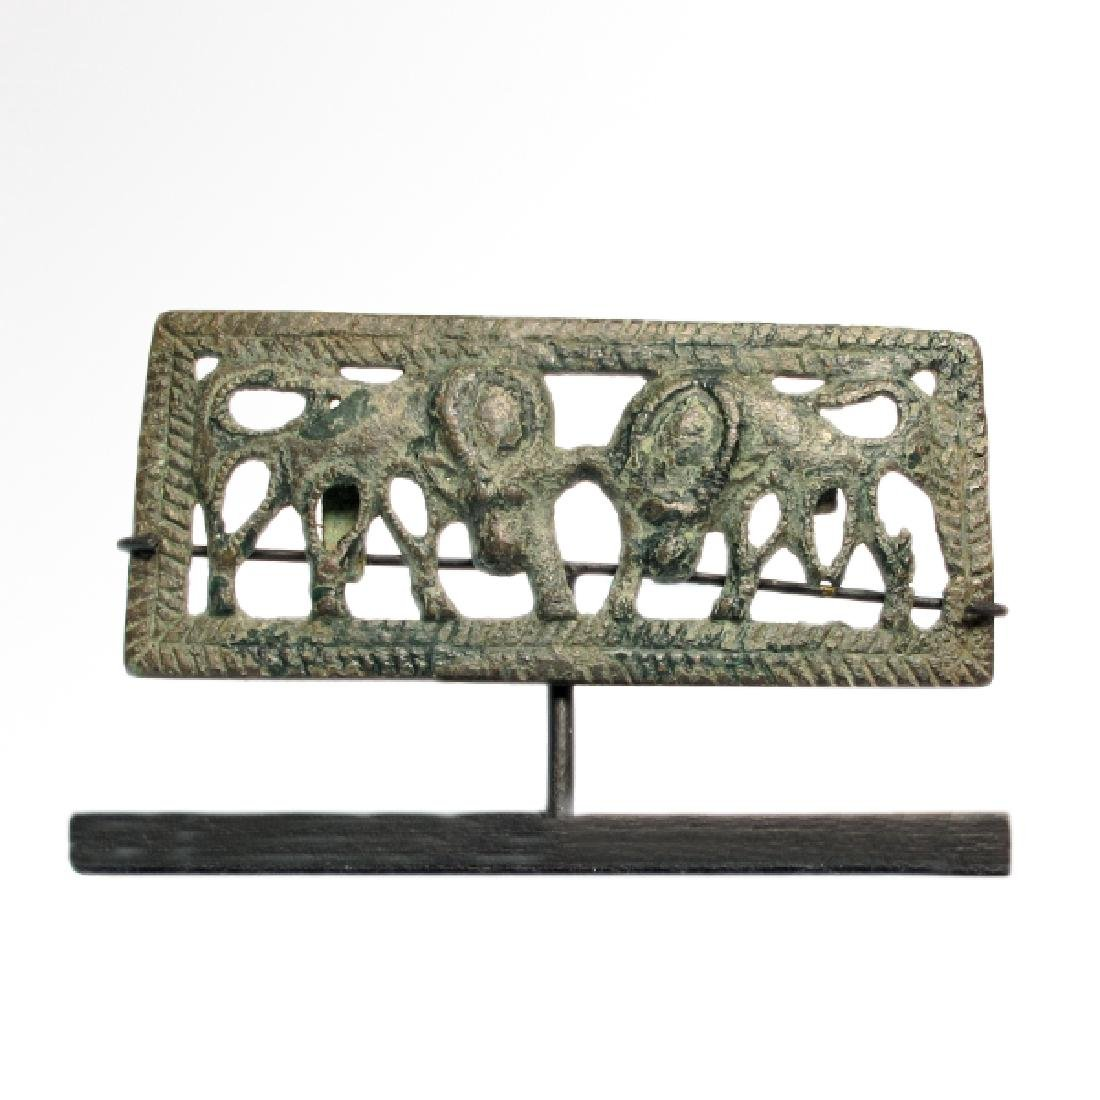 Ordos Open-Work Plaque with Grazing Bulls, c. 500 B.C. - 2